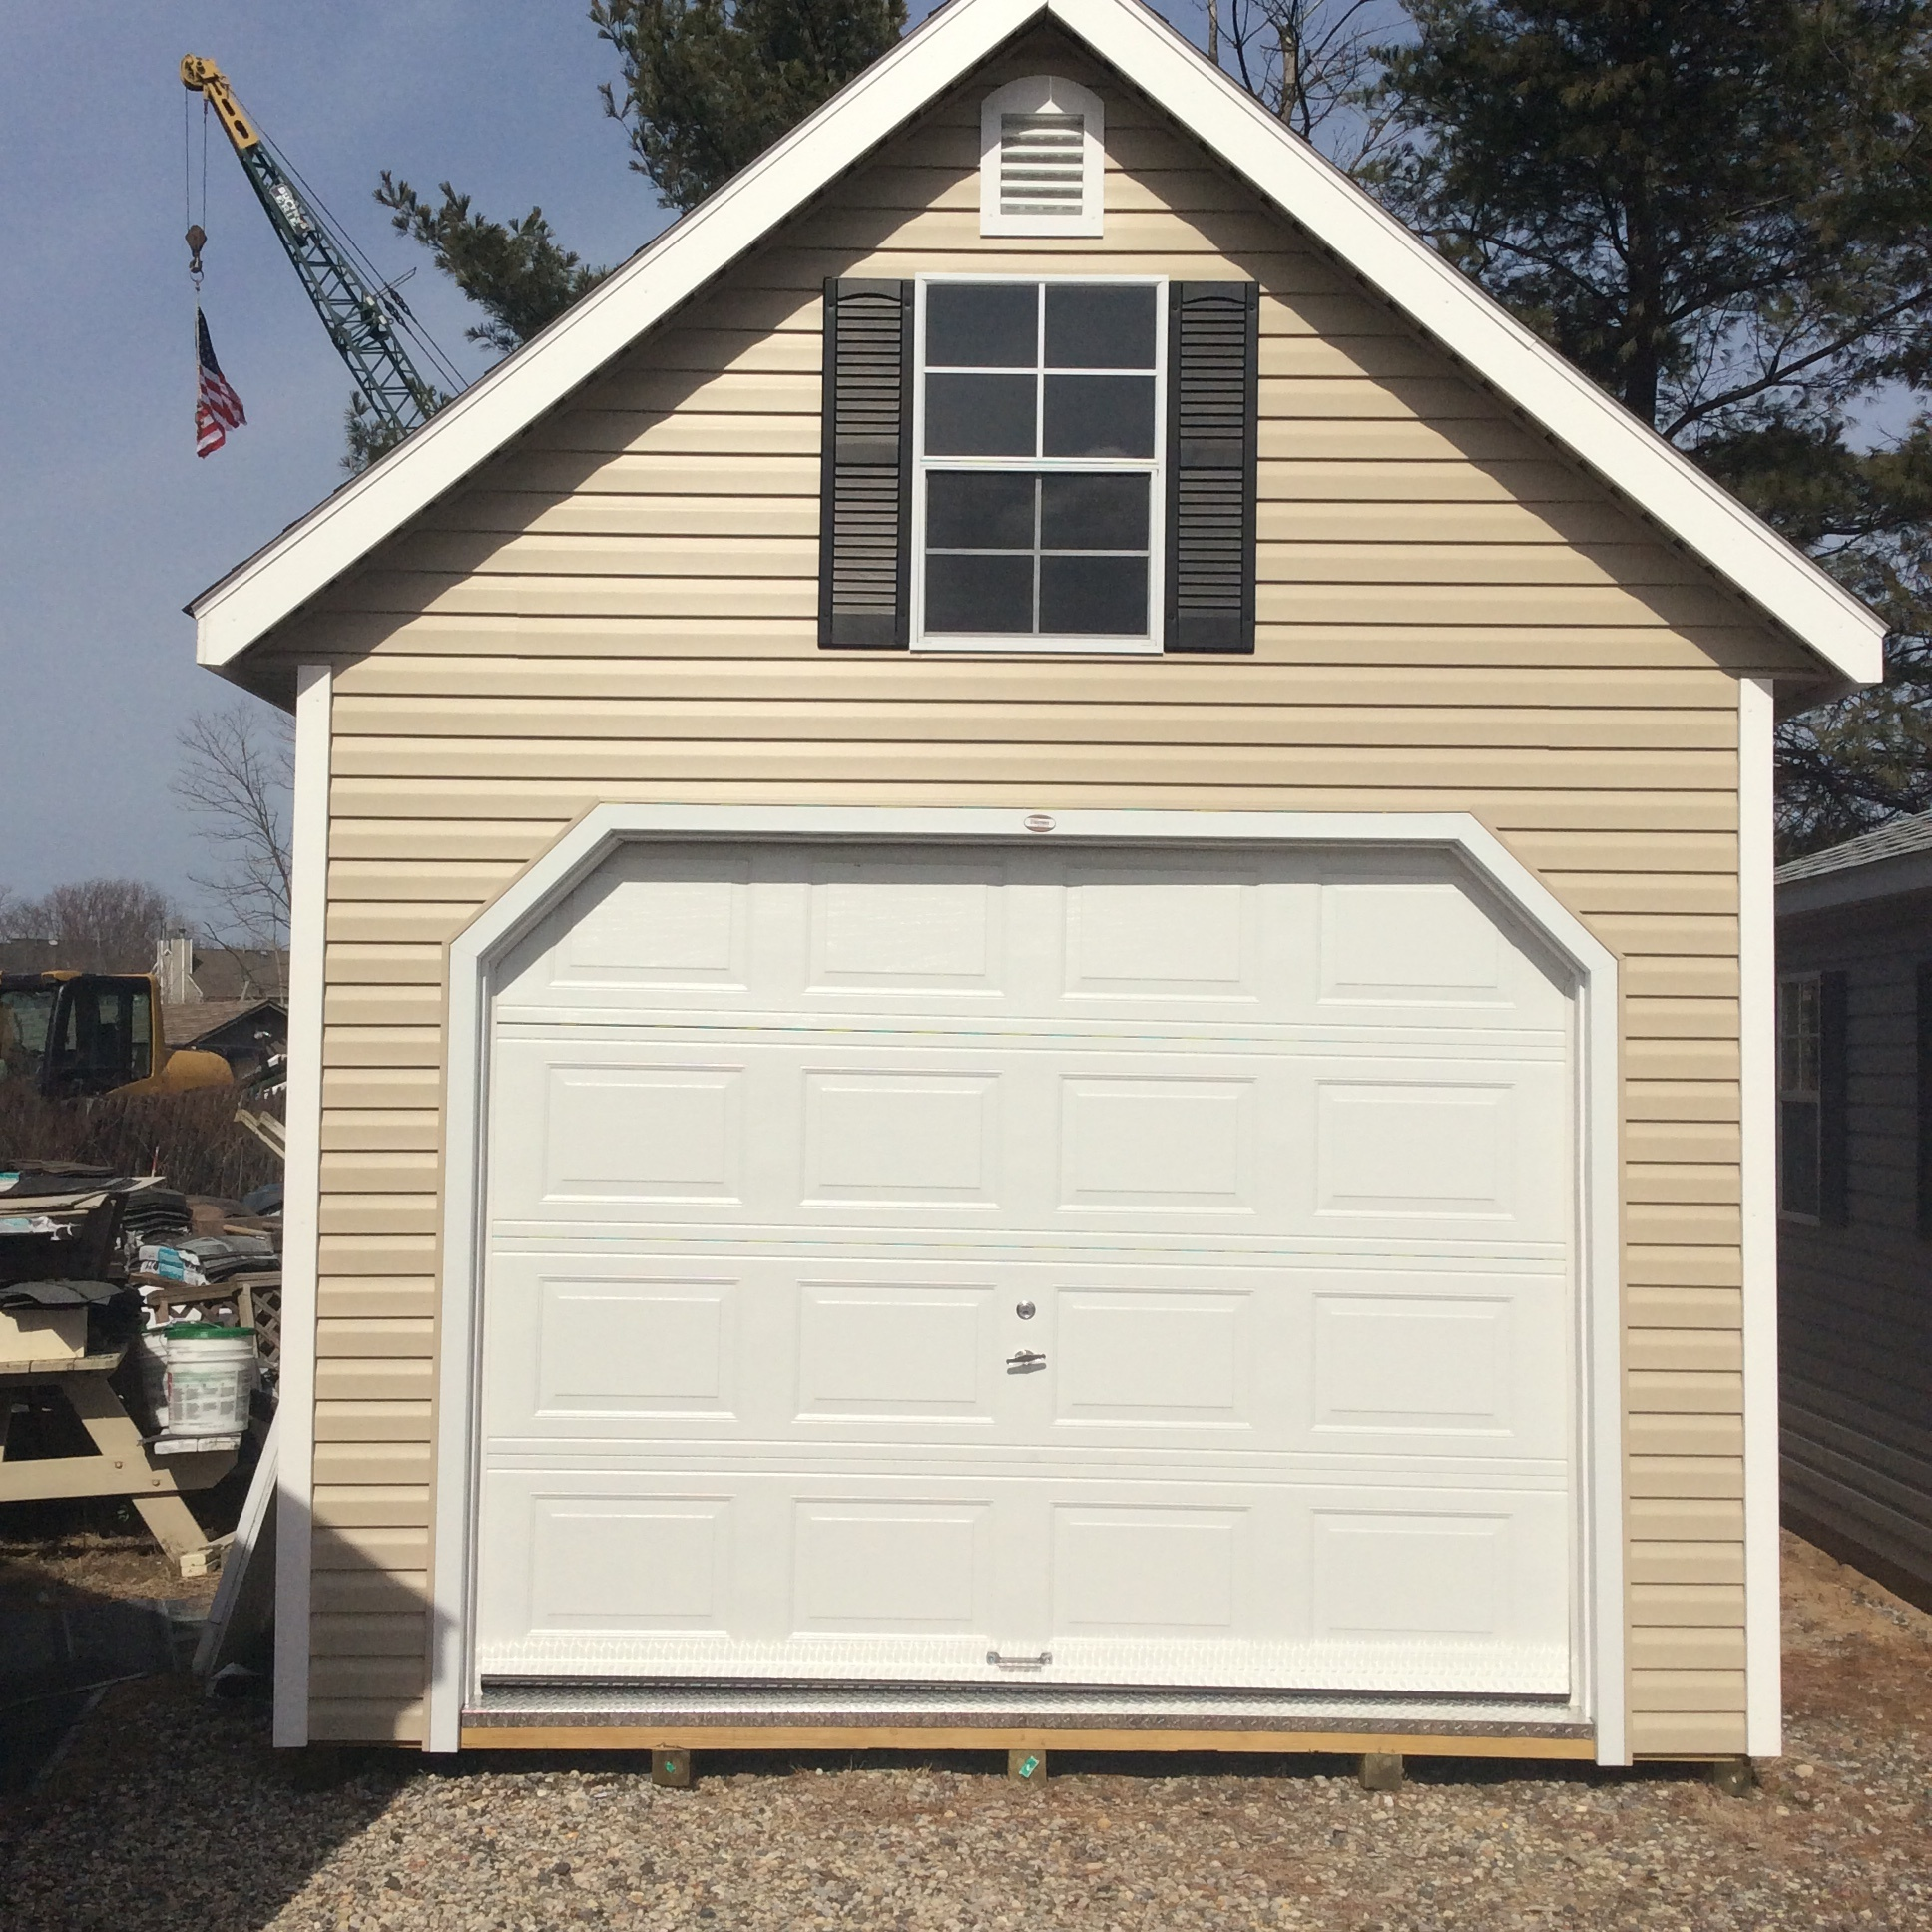 12 X 16 One And A Half Story Vinyl Garage With Almond Siding Loft